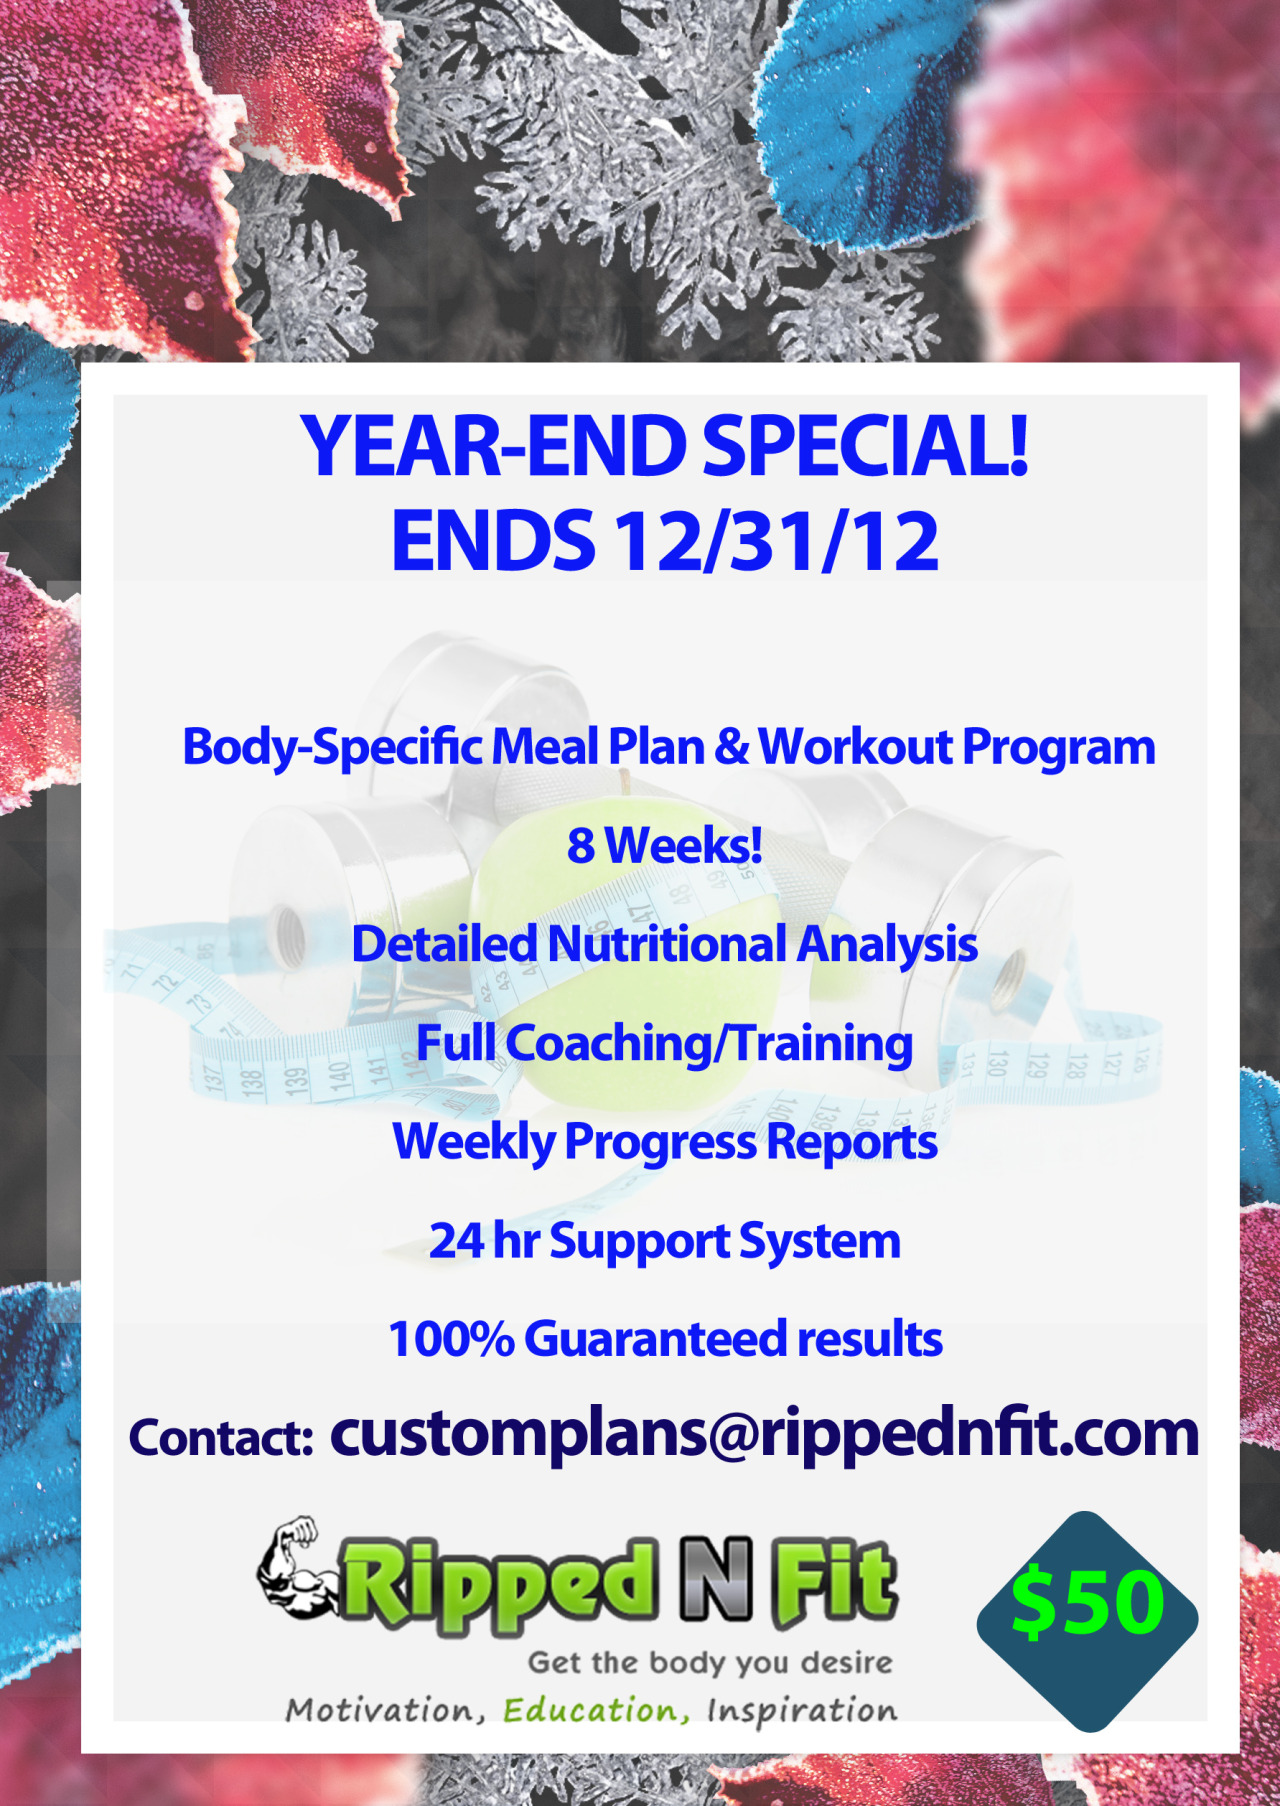 HOLIDAY SPECIAL! Get your custom 8 week meal plan and workout for only $50! Email customplans@rippednfit.com